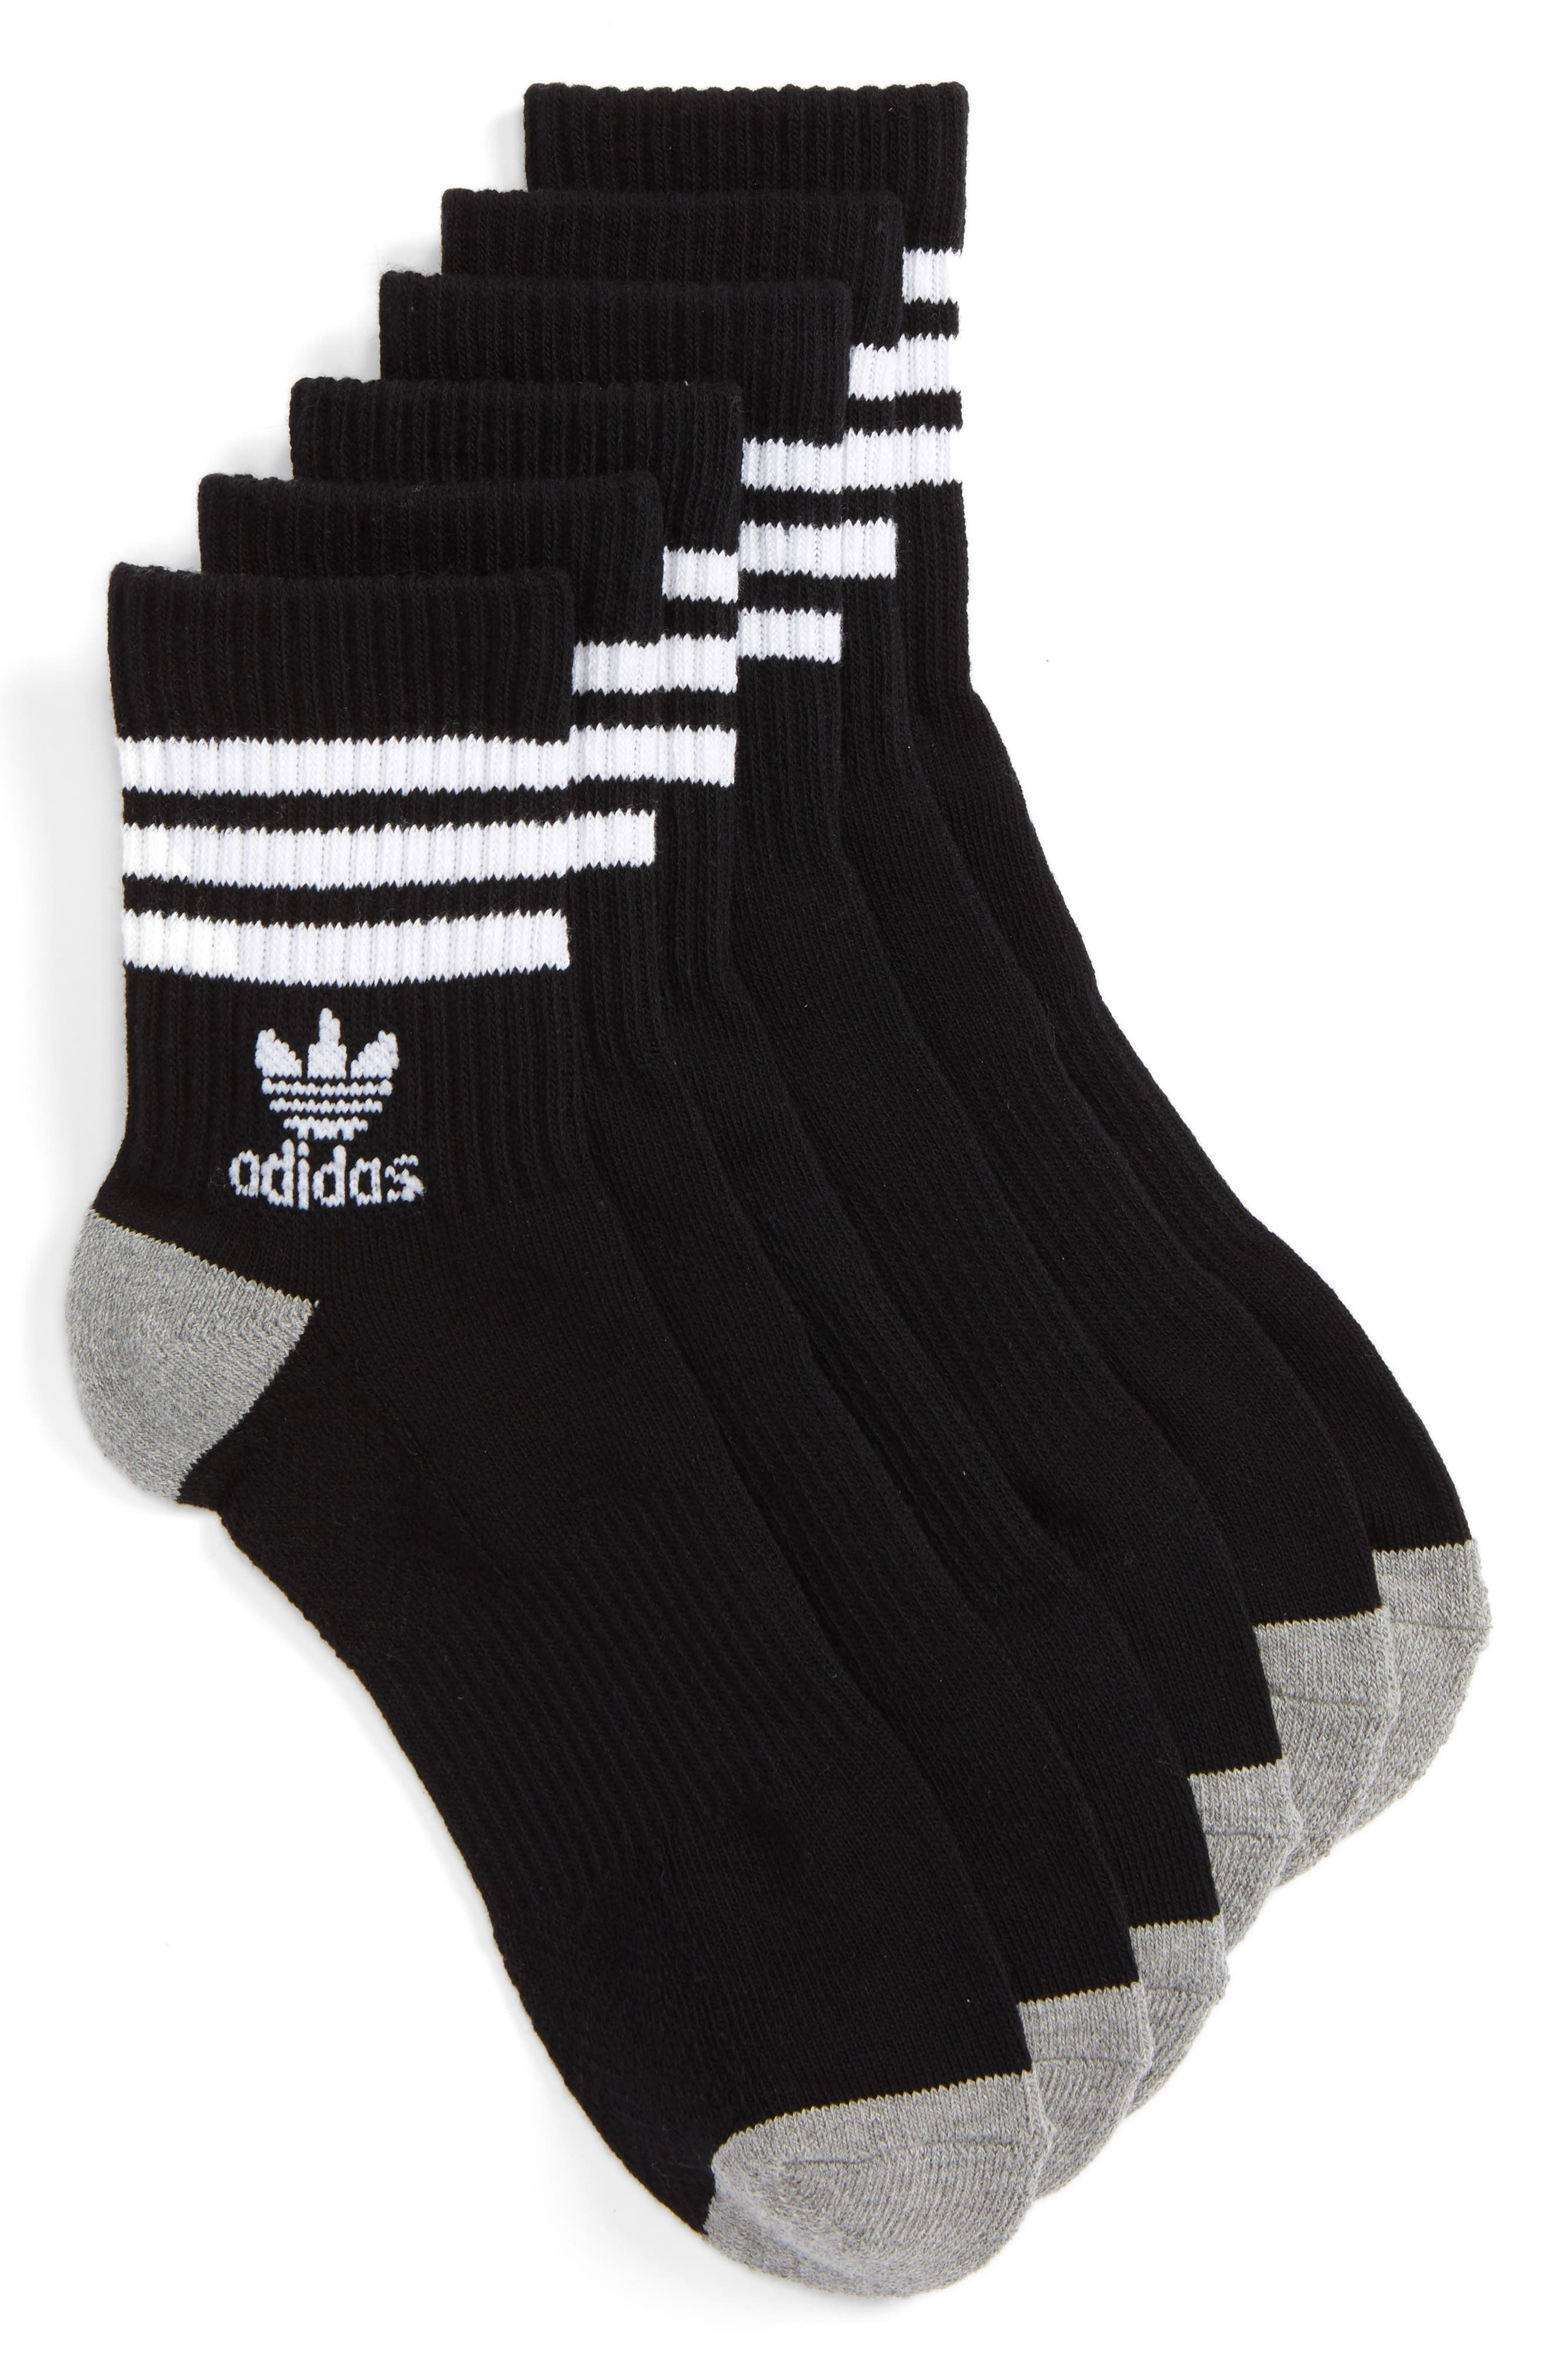 adidas 3-Pack Quarter Crew Socks